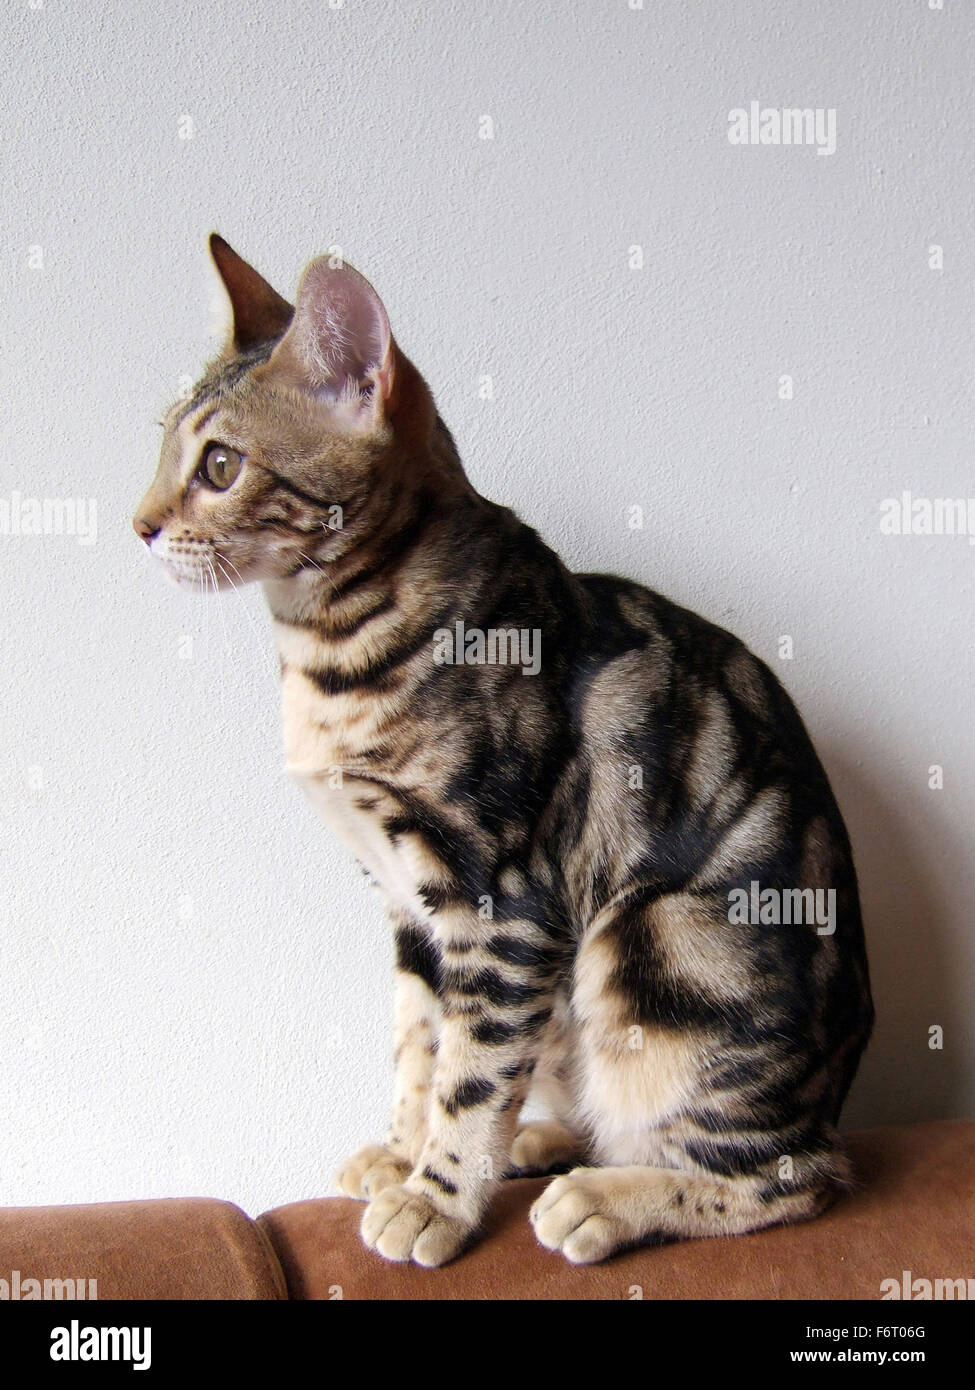 a6d2825c6d Marble bengal cat taken at home Stock Photo  90266808 - Alamy